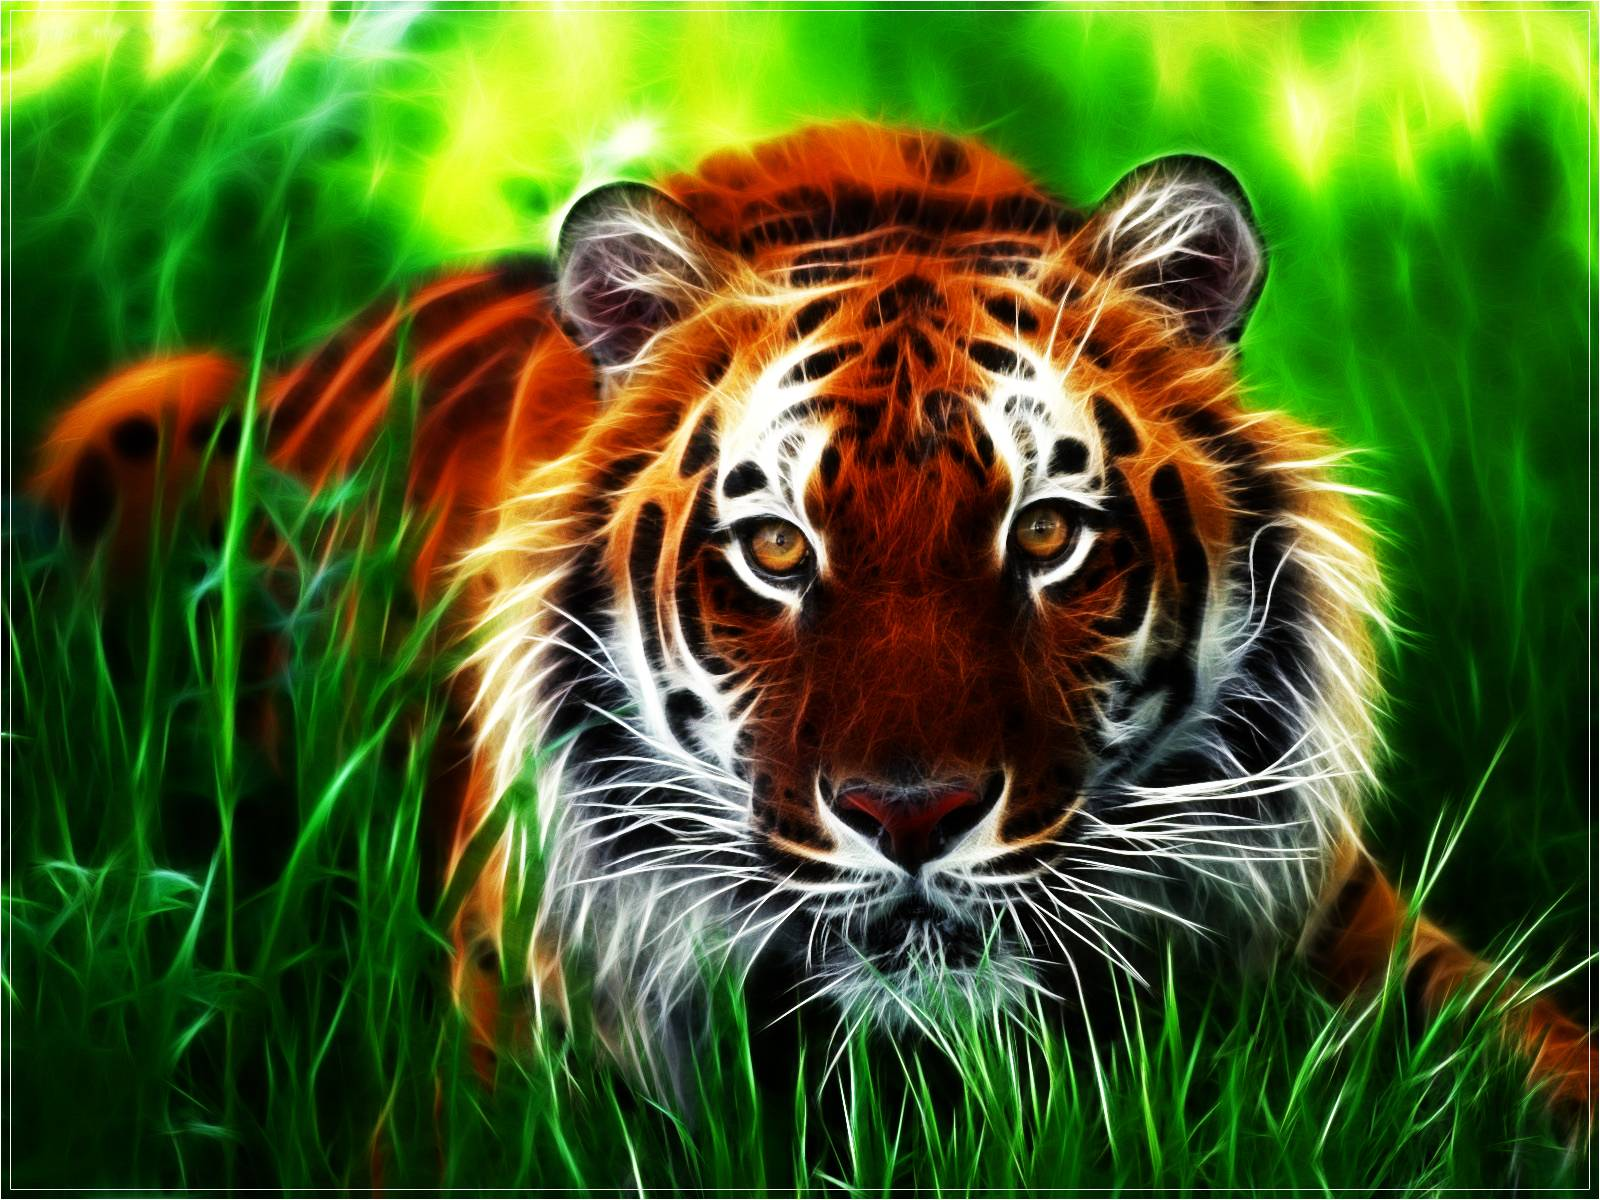 3D Tiger HD Wallpaper | Wallpaper Download